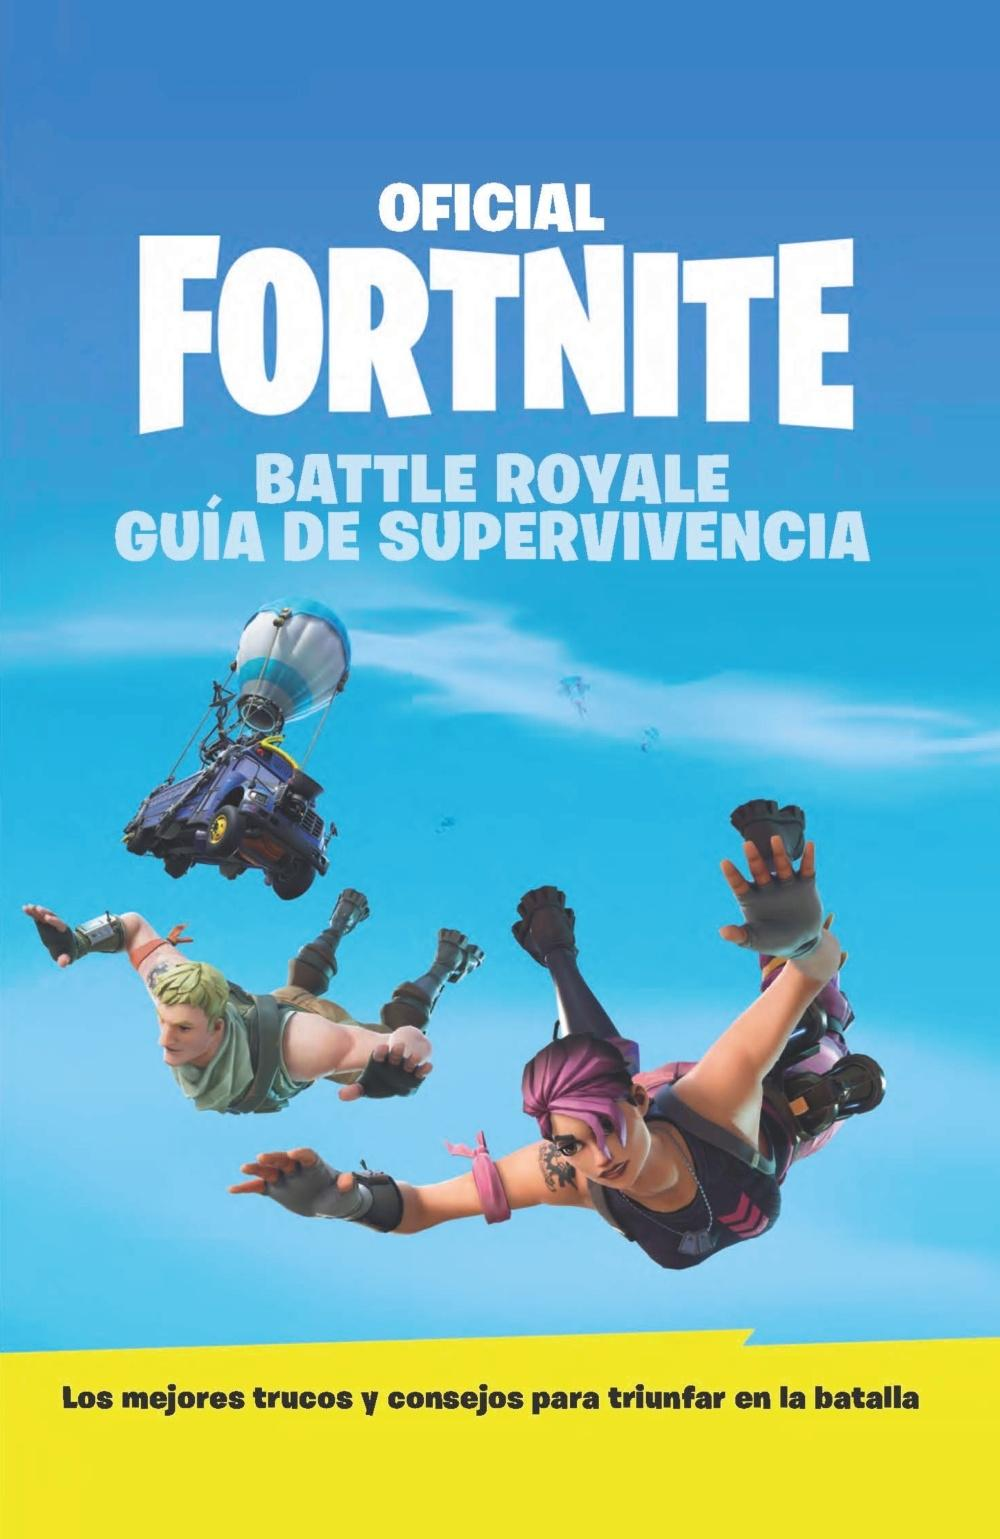 GUÍA DE SUPERVIVENCIA - OFICIAL FORTNITE  BATTLE ROYAL